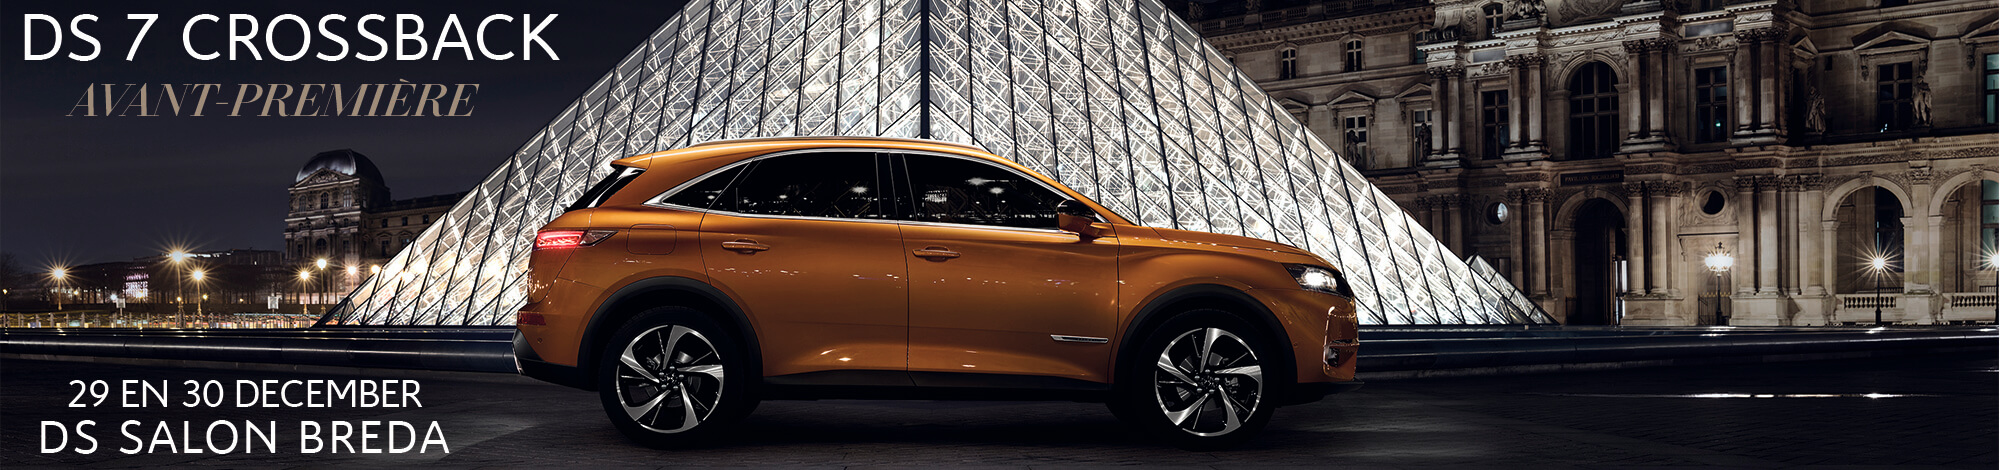 ds7-crossback-premiere